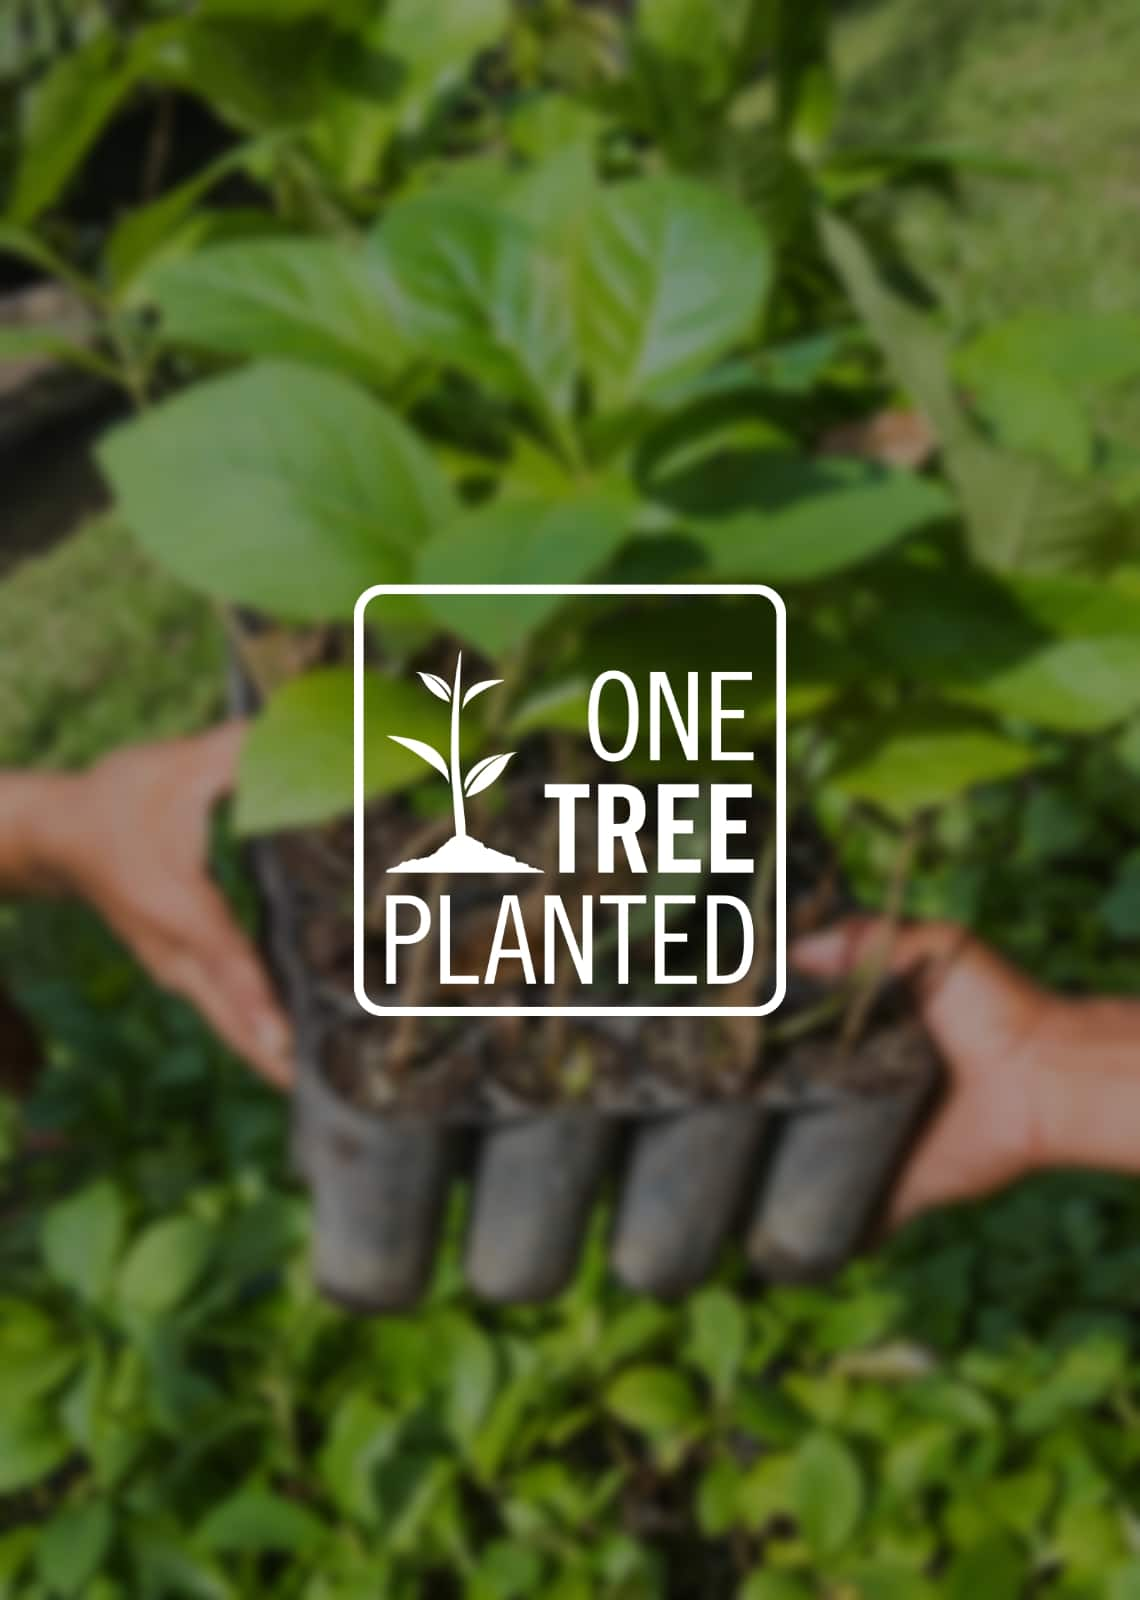 In Partnership with One Tree Planted